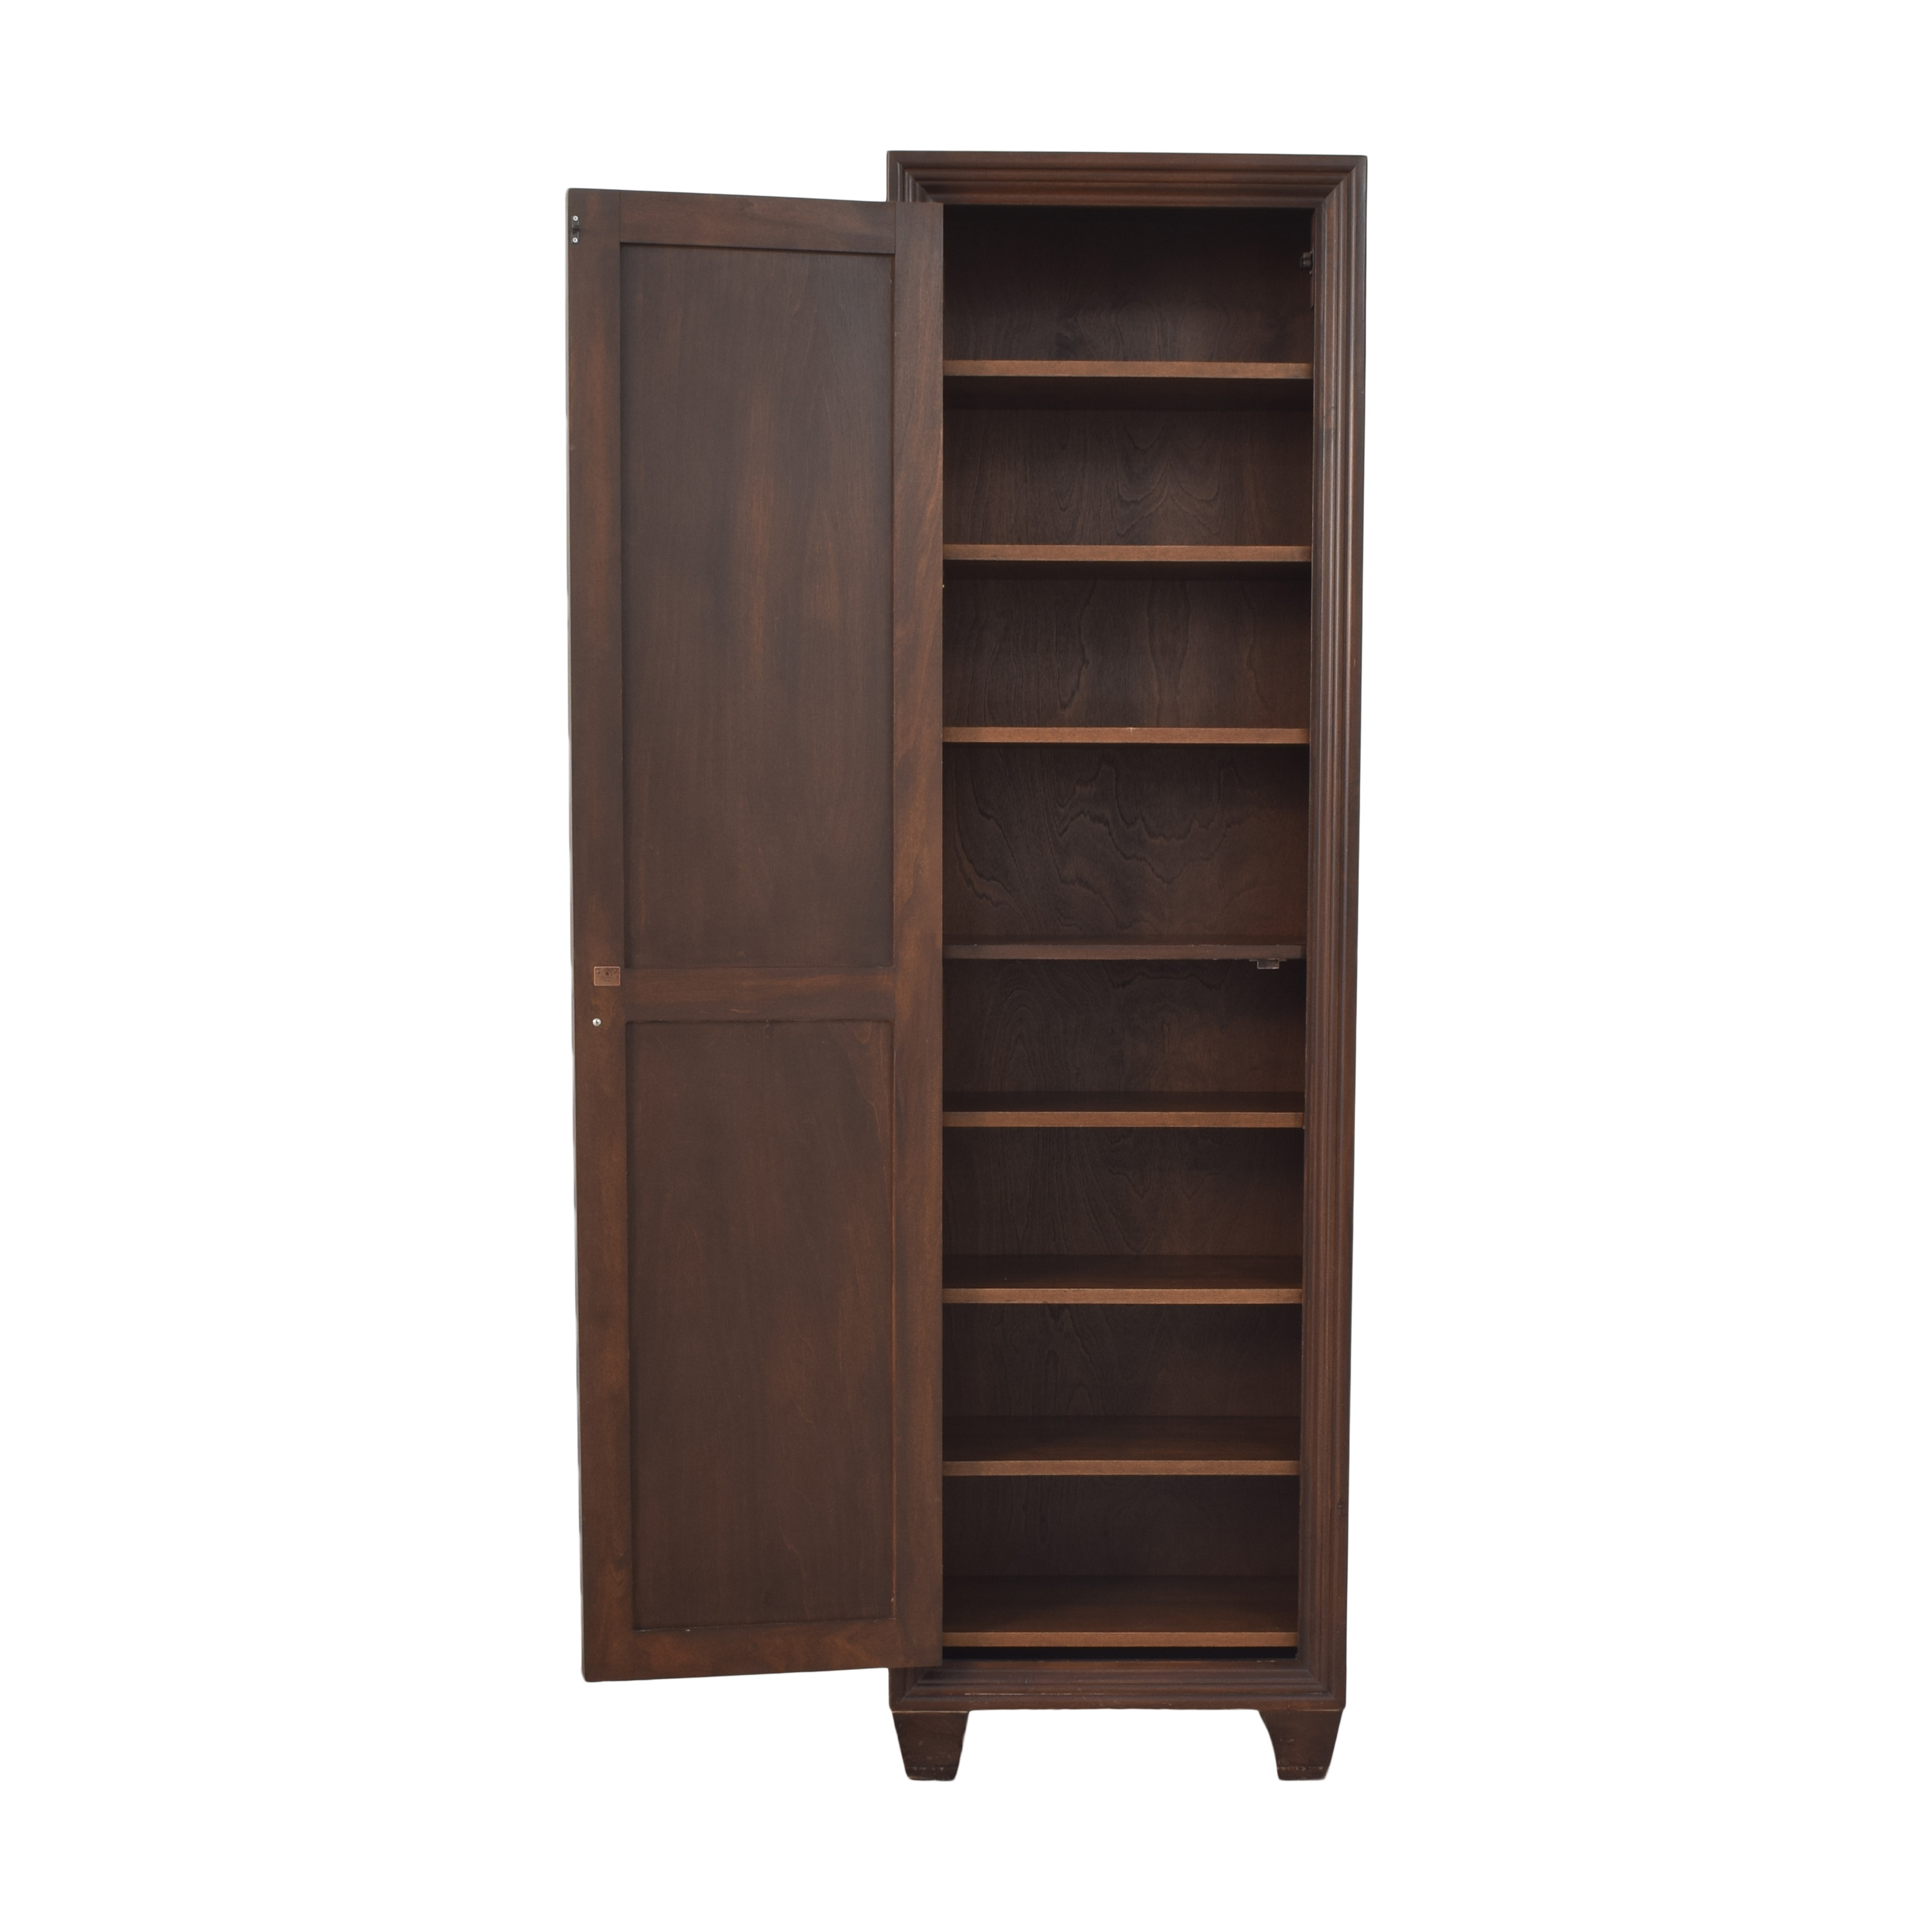 Schrager Furniture Schrager Furniture Tall Cabinet pa